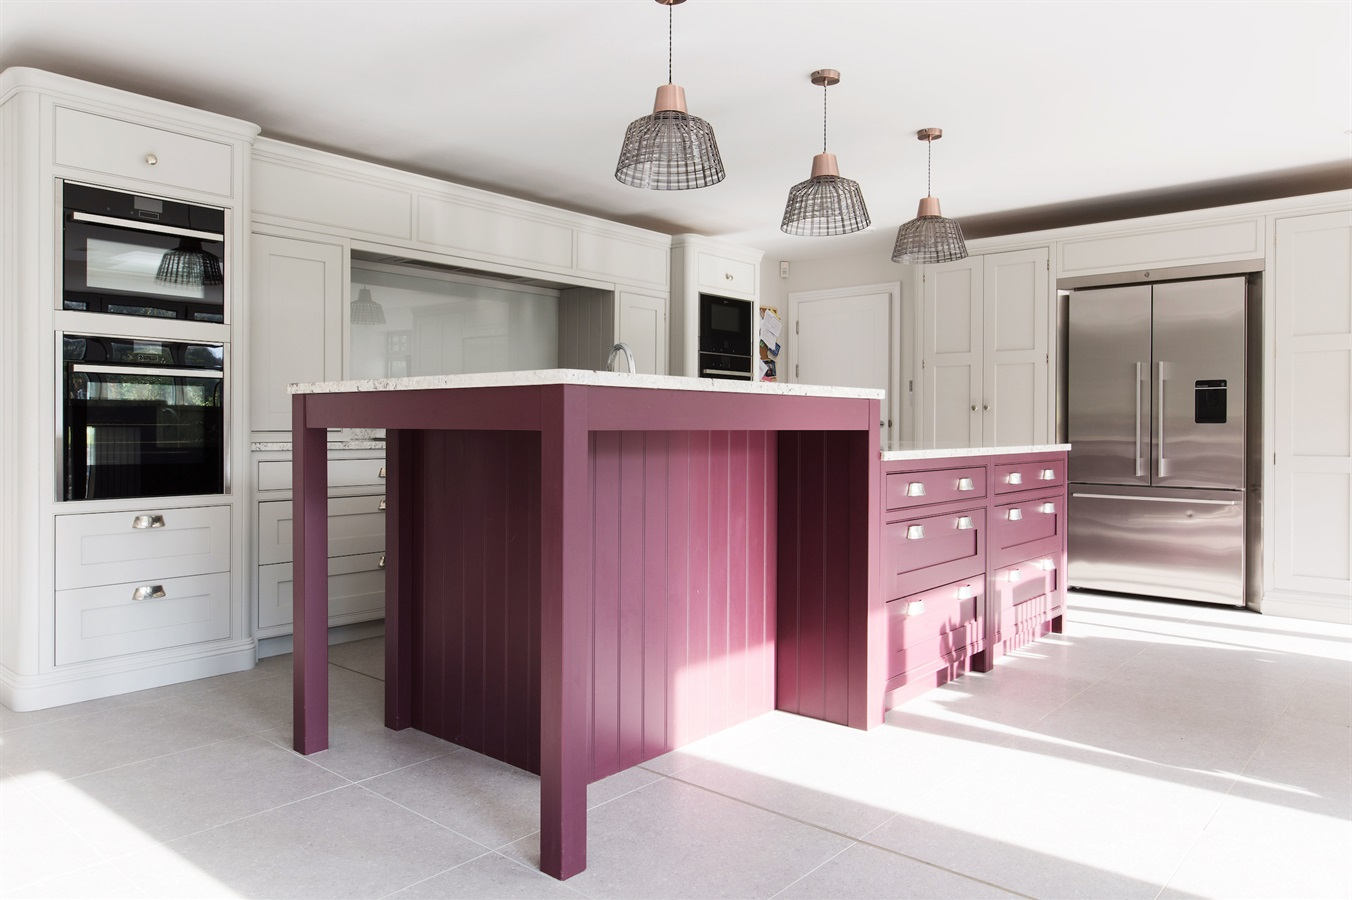 Burlanes Interiors - Multi functional kitchen island